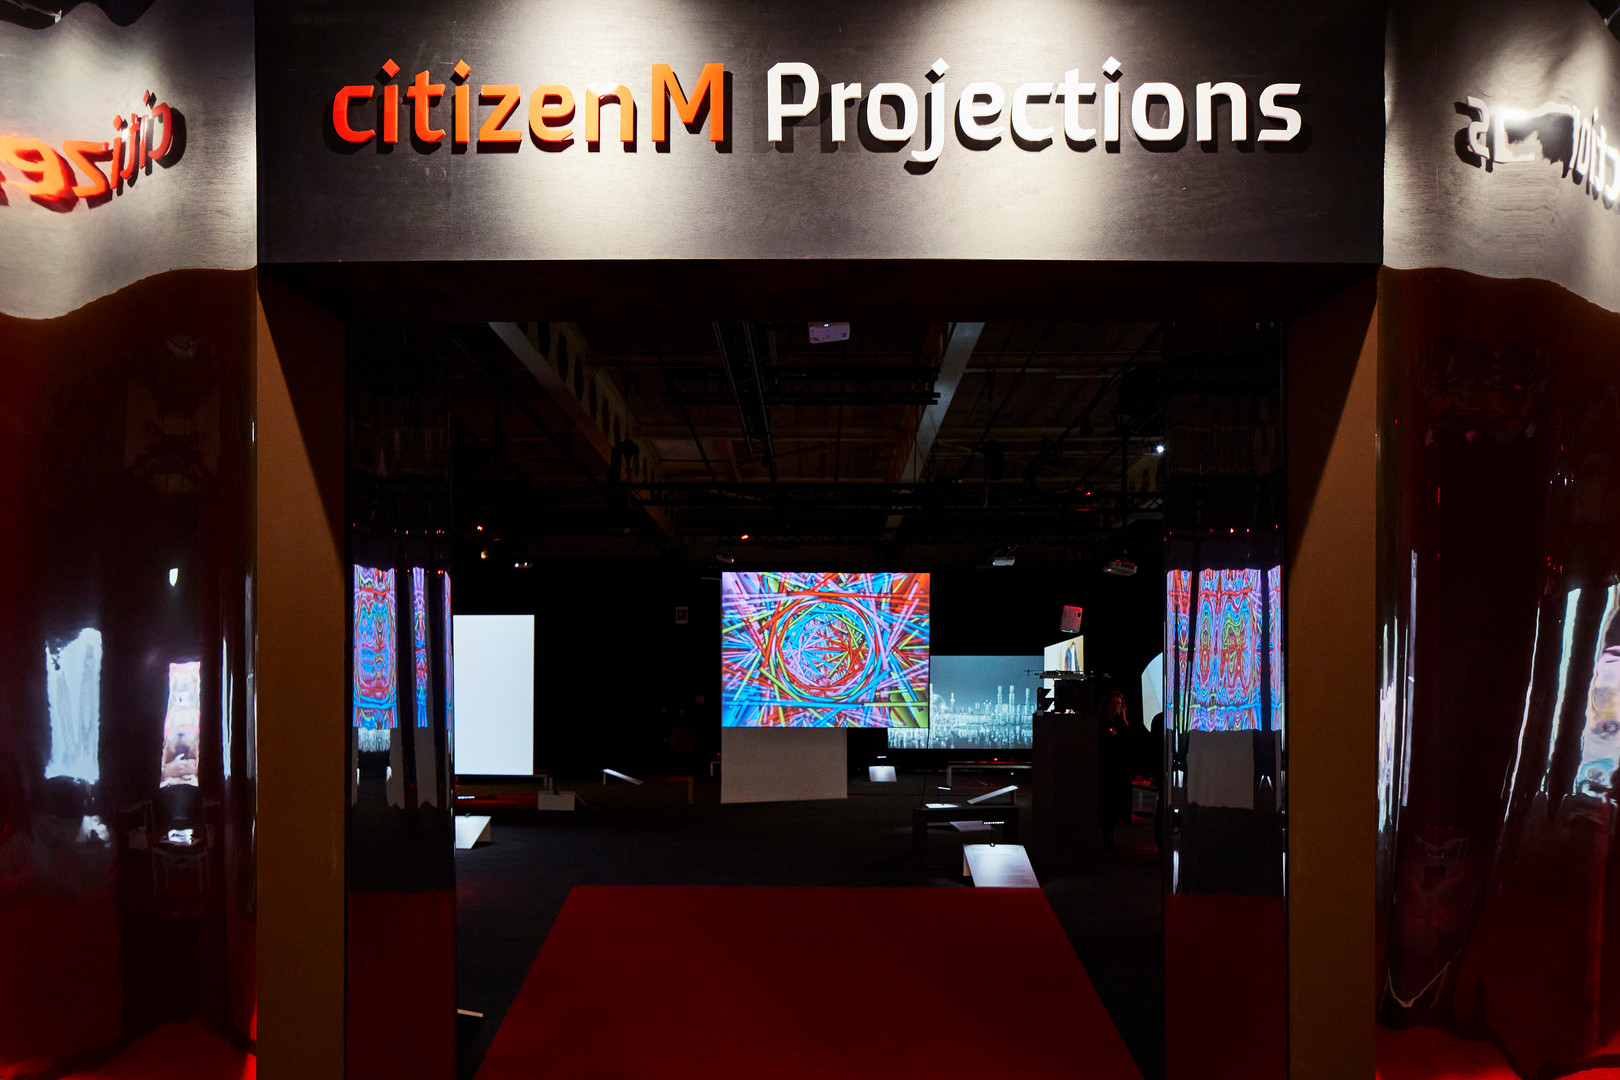 20.02.05.CitizenM_Projections_0022_Def.j